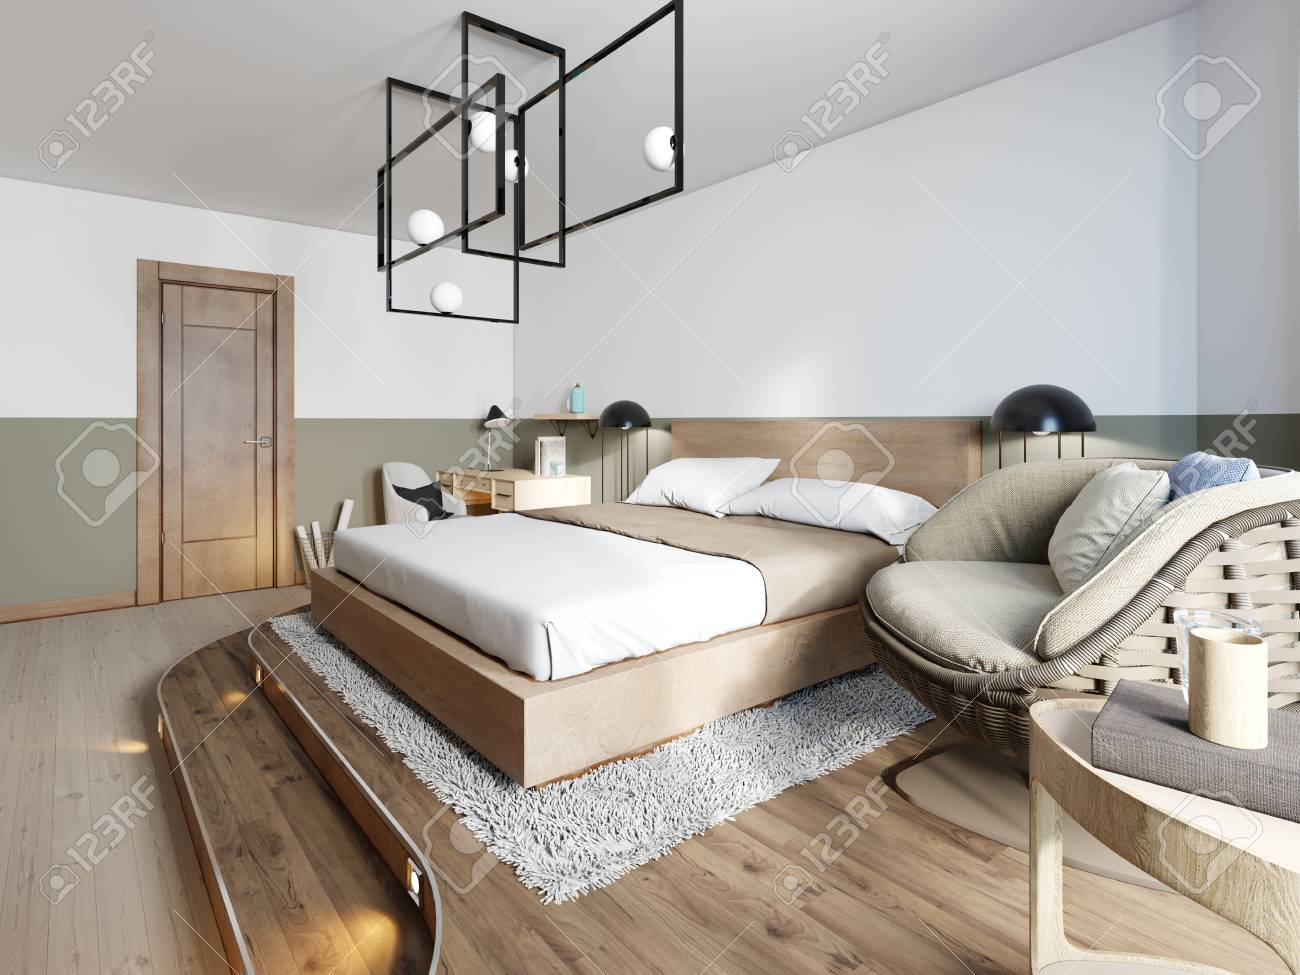 Modern rustic bedroom design and a bed on a wooden podium with..